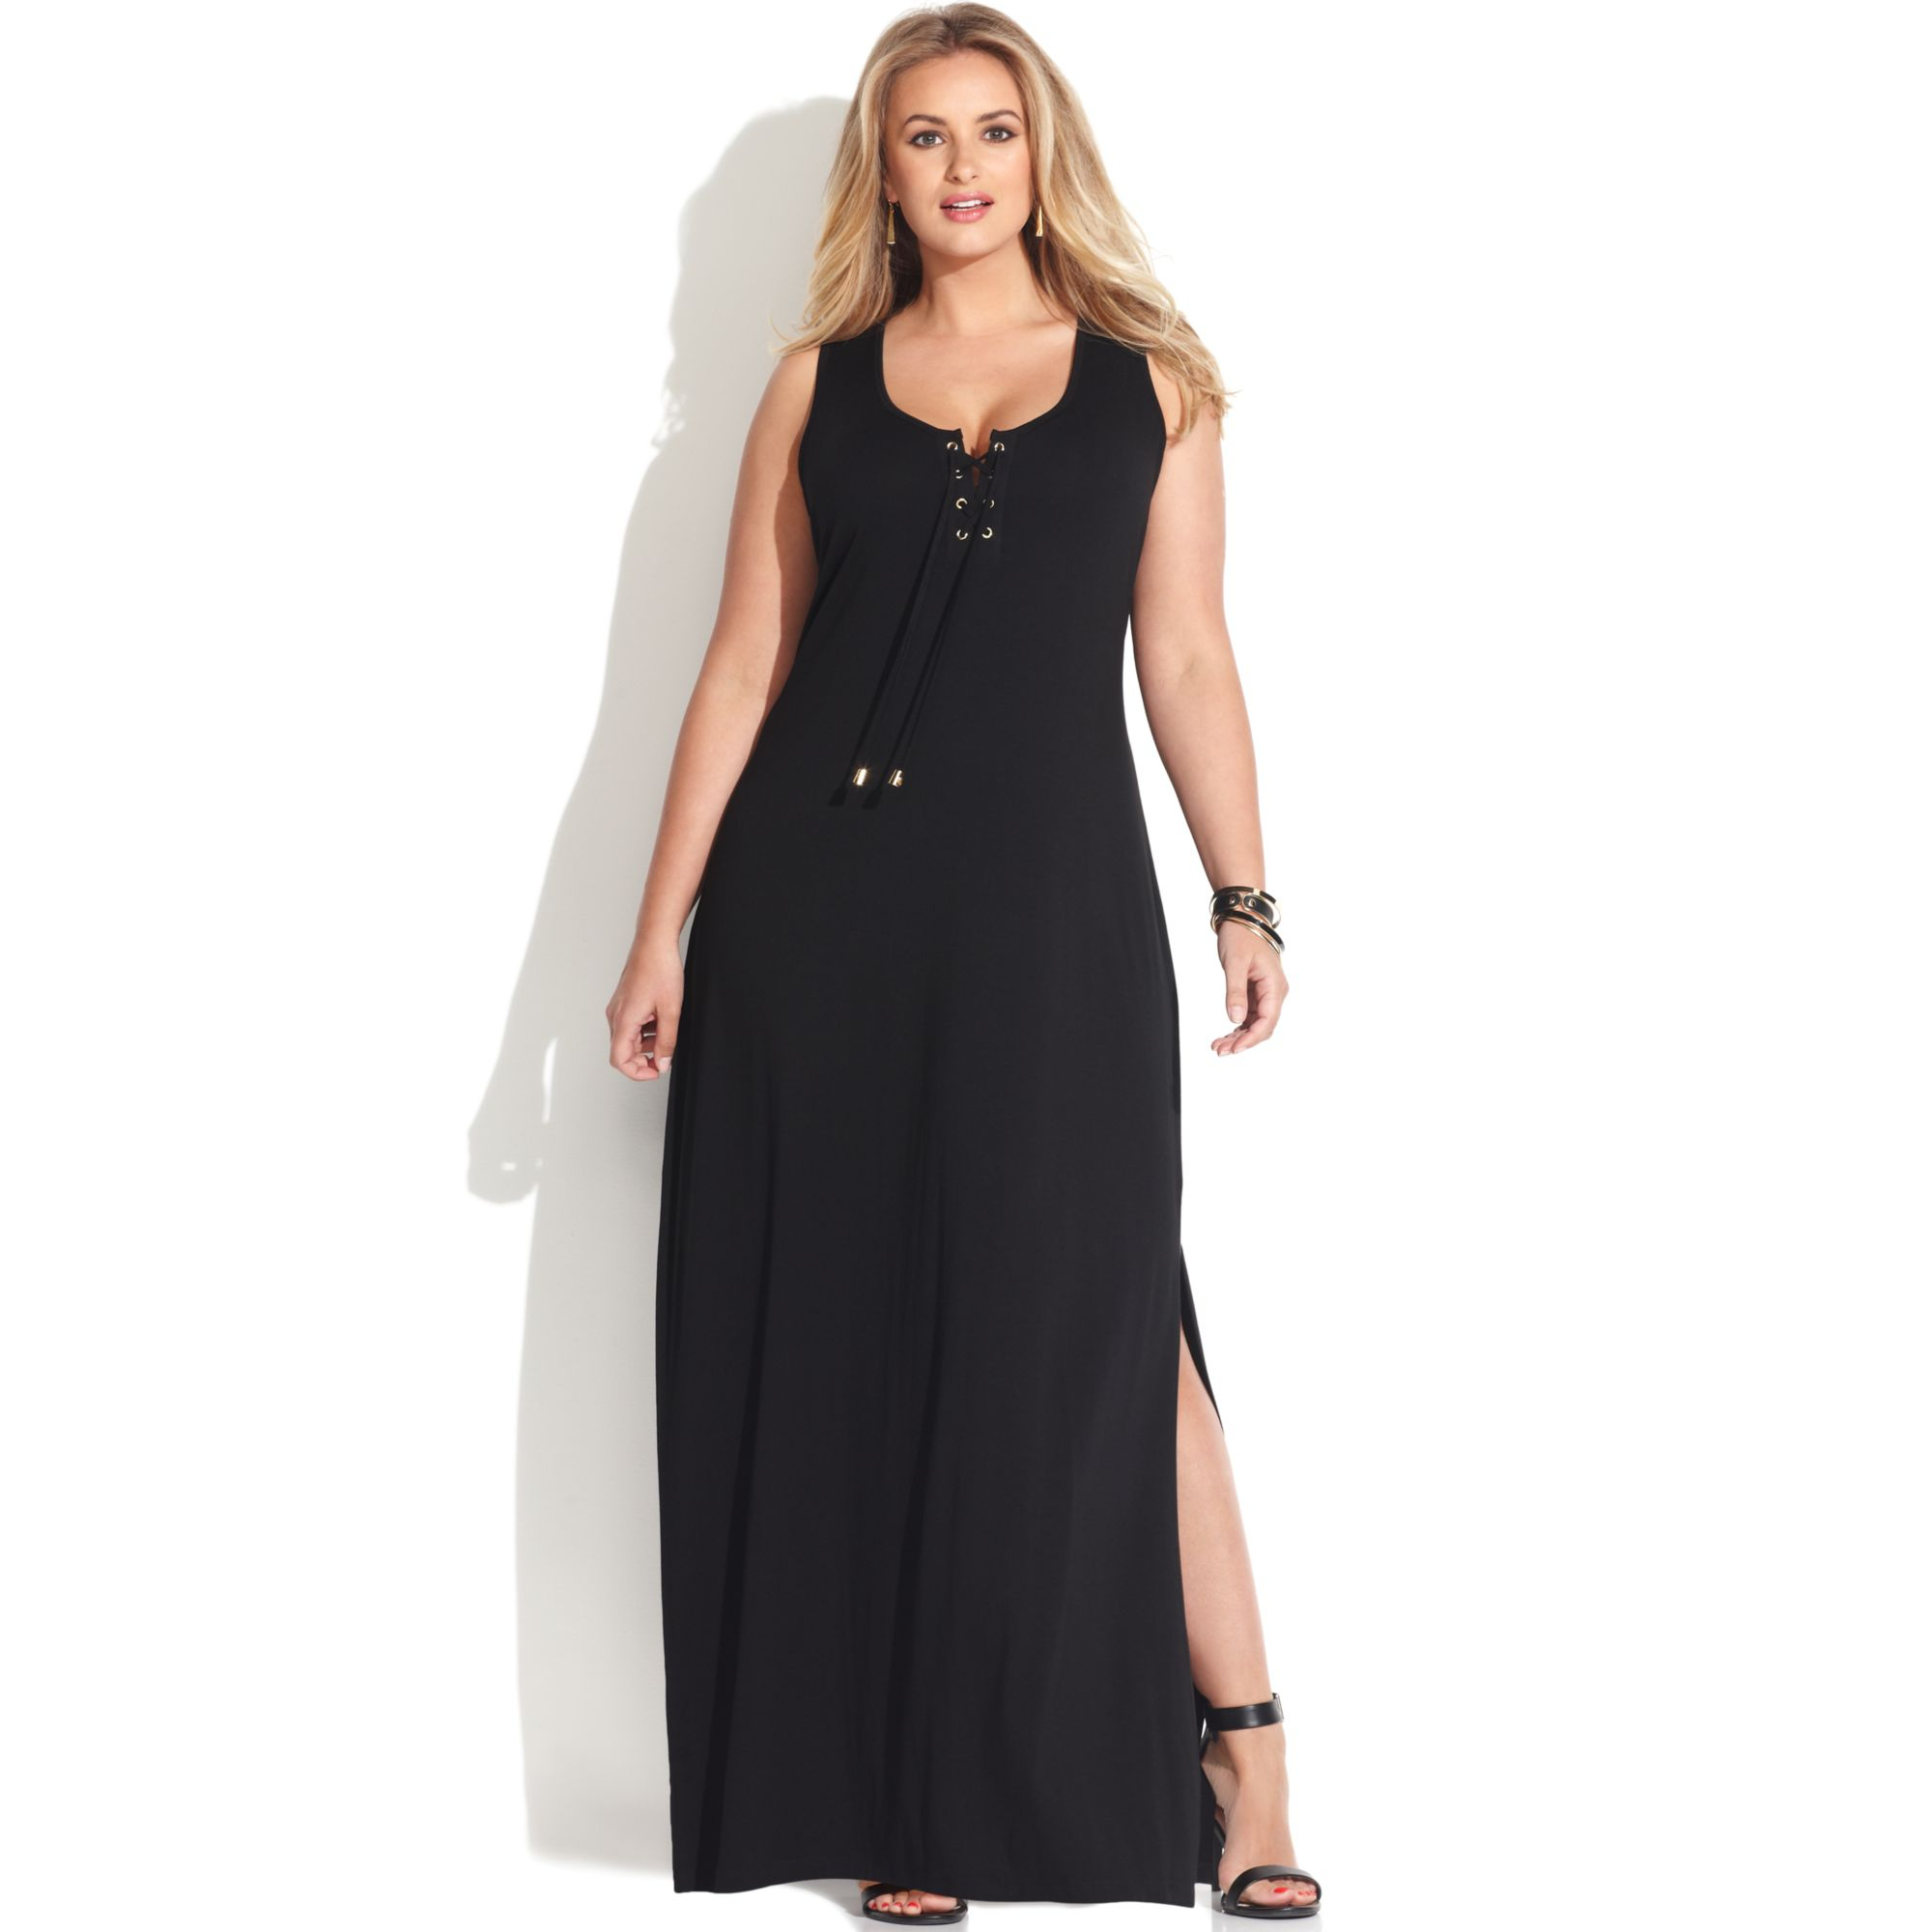 73fc98d2fd28 Lyst - Vince Camuto Plus Size Sleeveless Lace Up Maxi Dress in Black